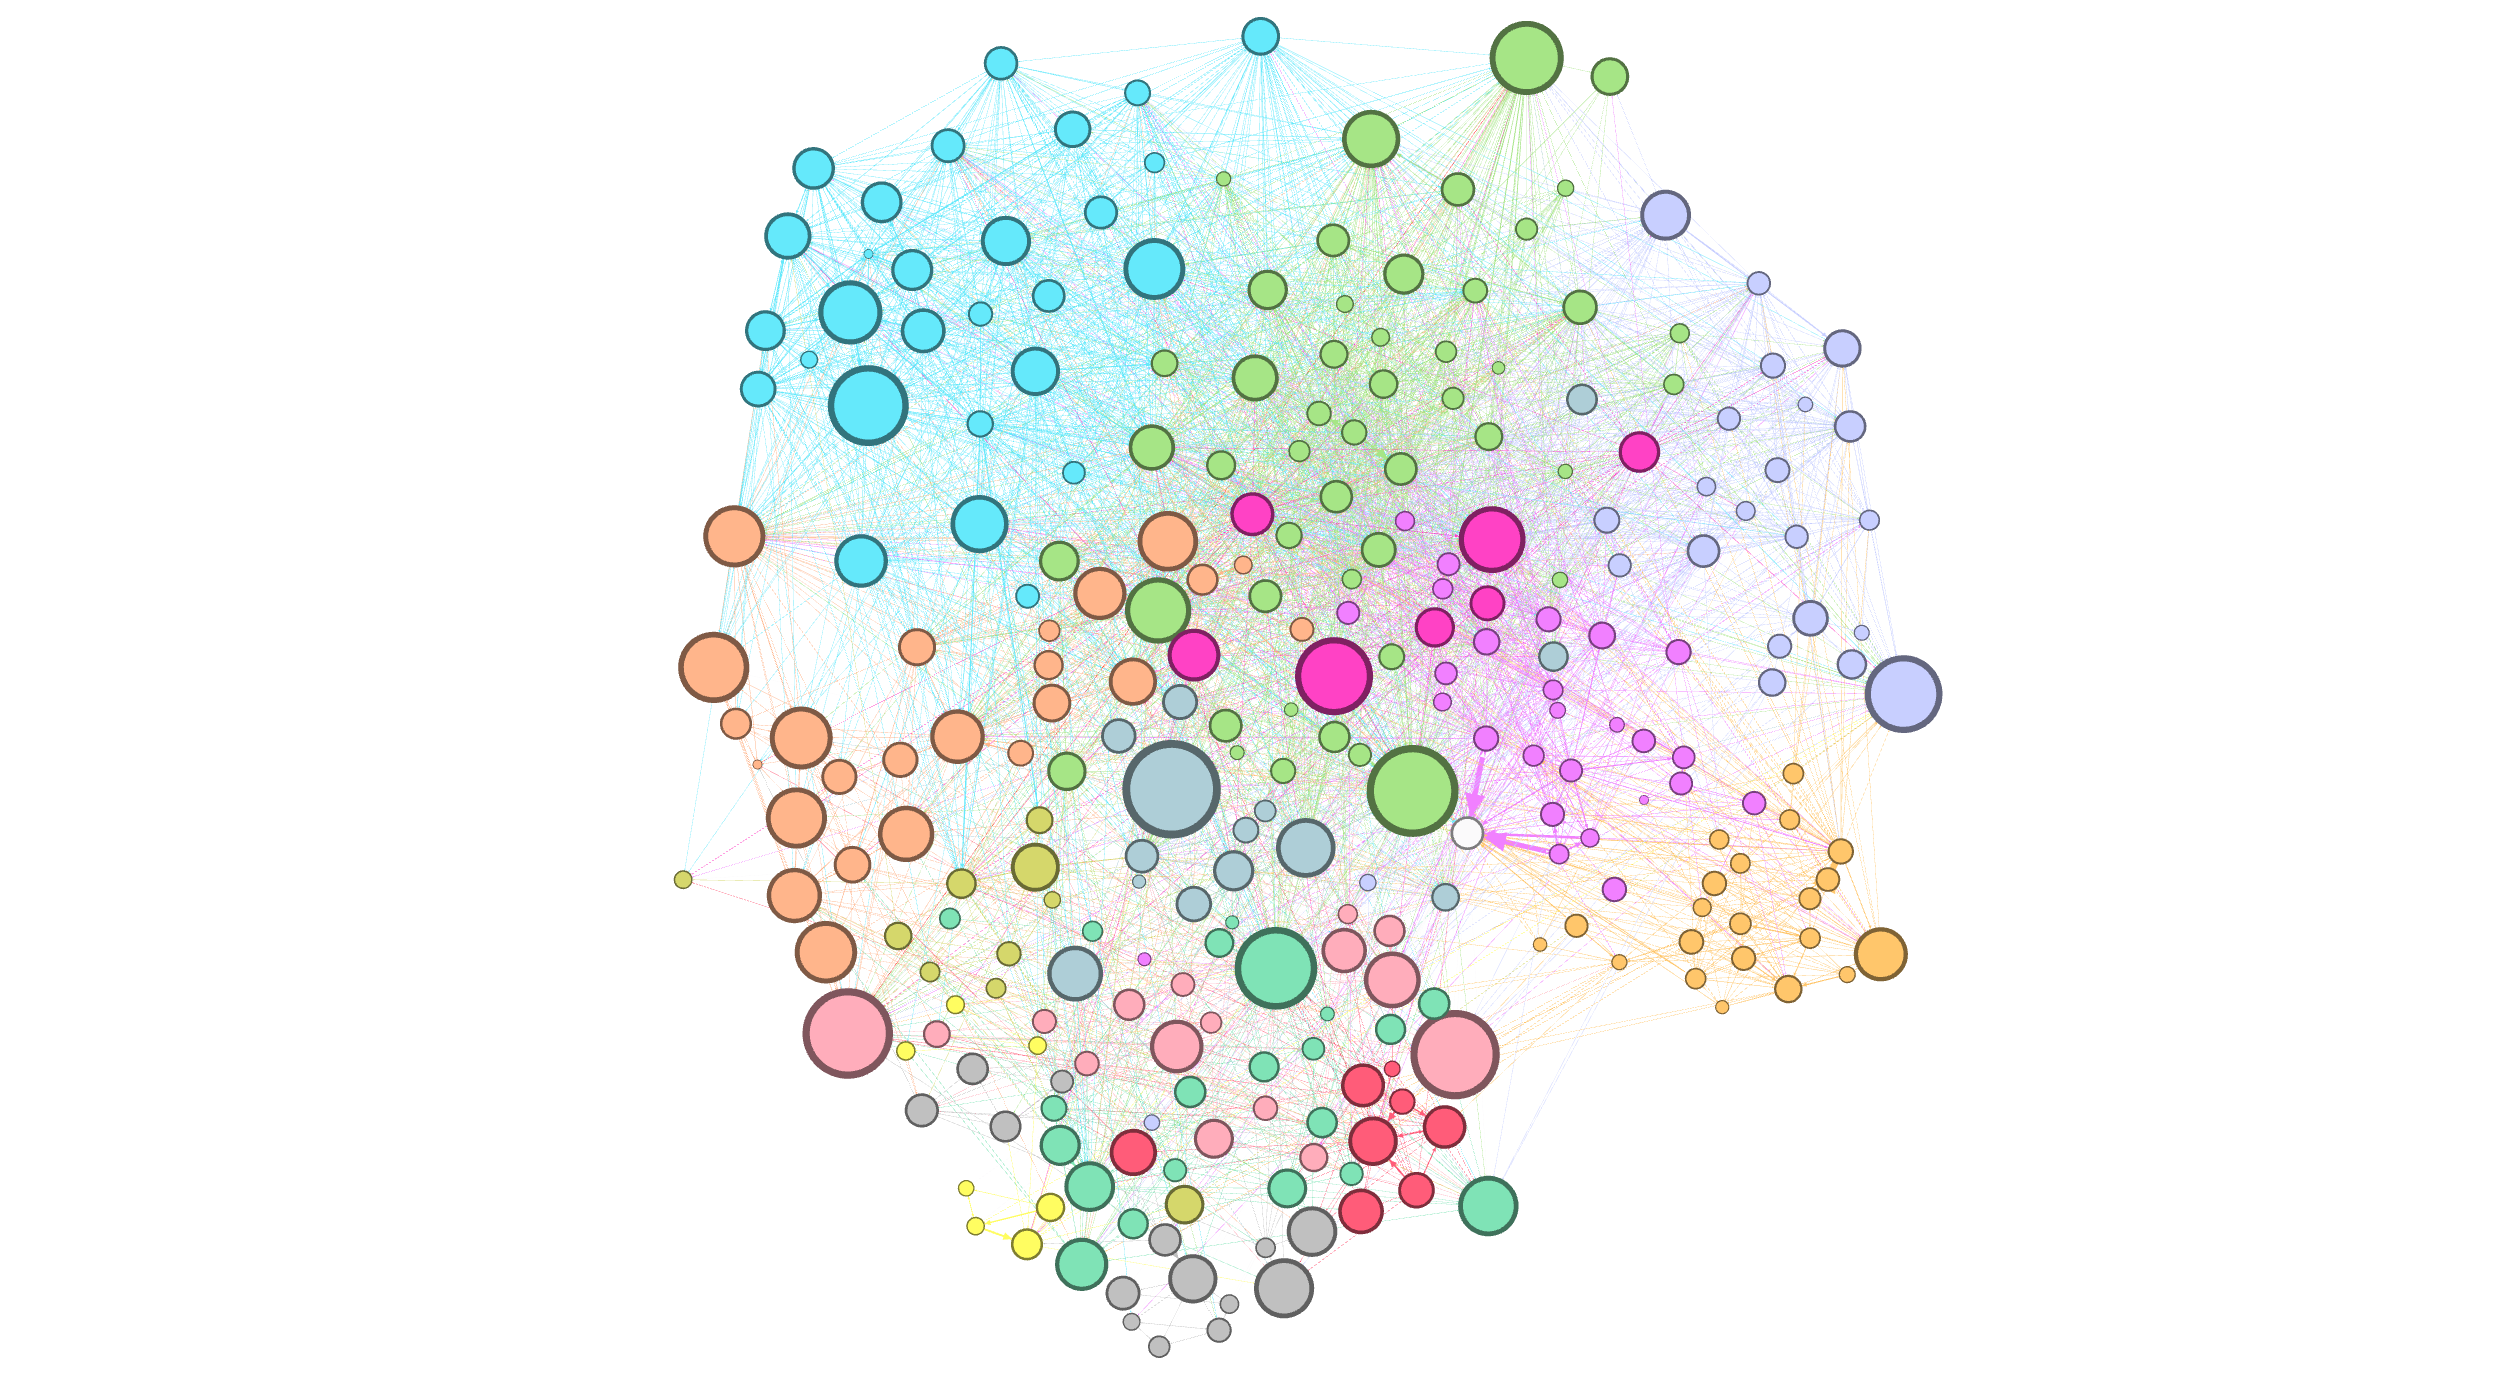 umair-akbar-1*Vx3puyglZhVmlfamtC0Sqg - A Graph-based approach to community detection in Twitter Networks